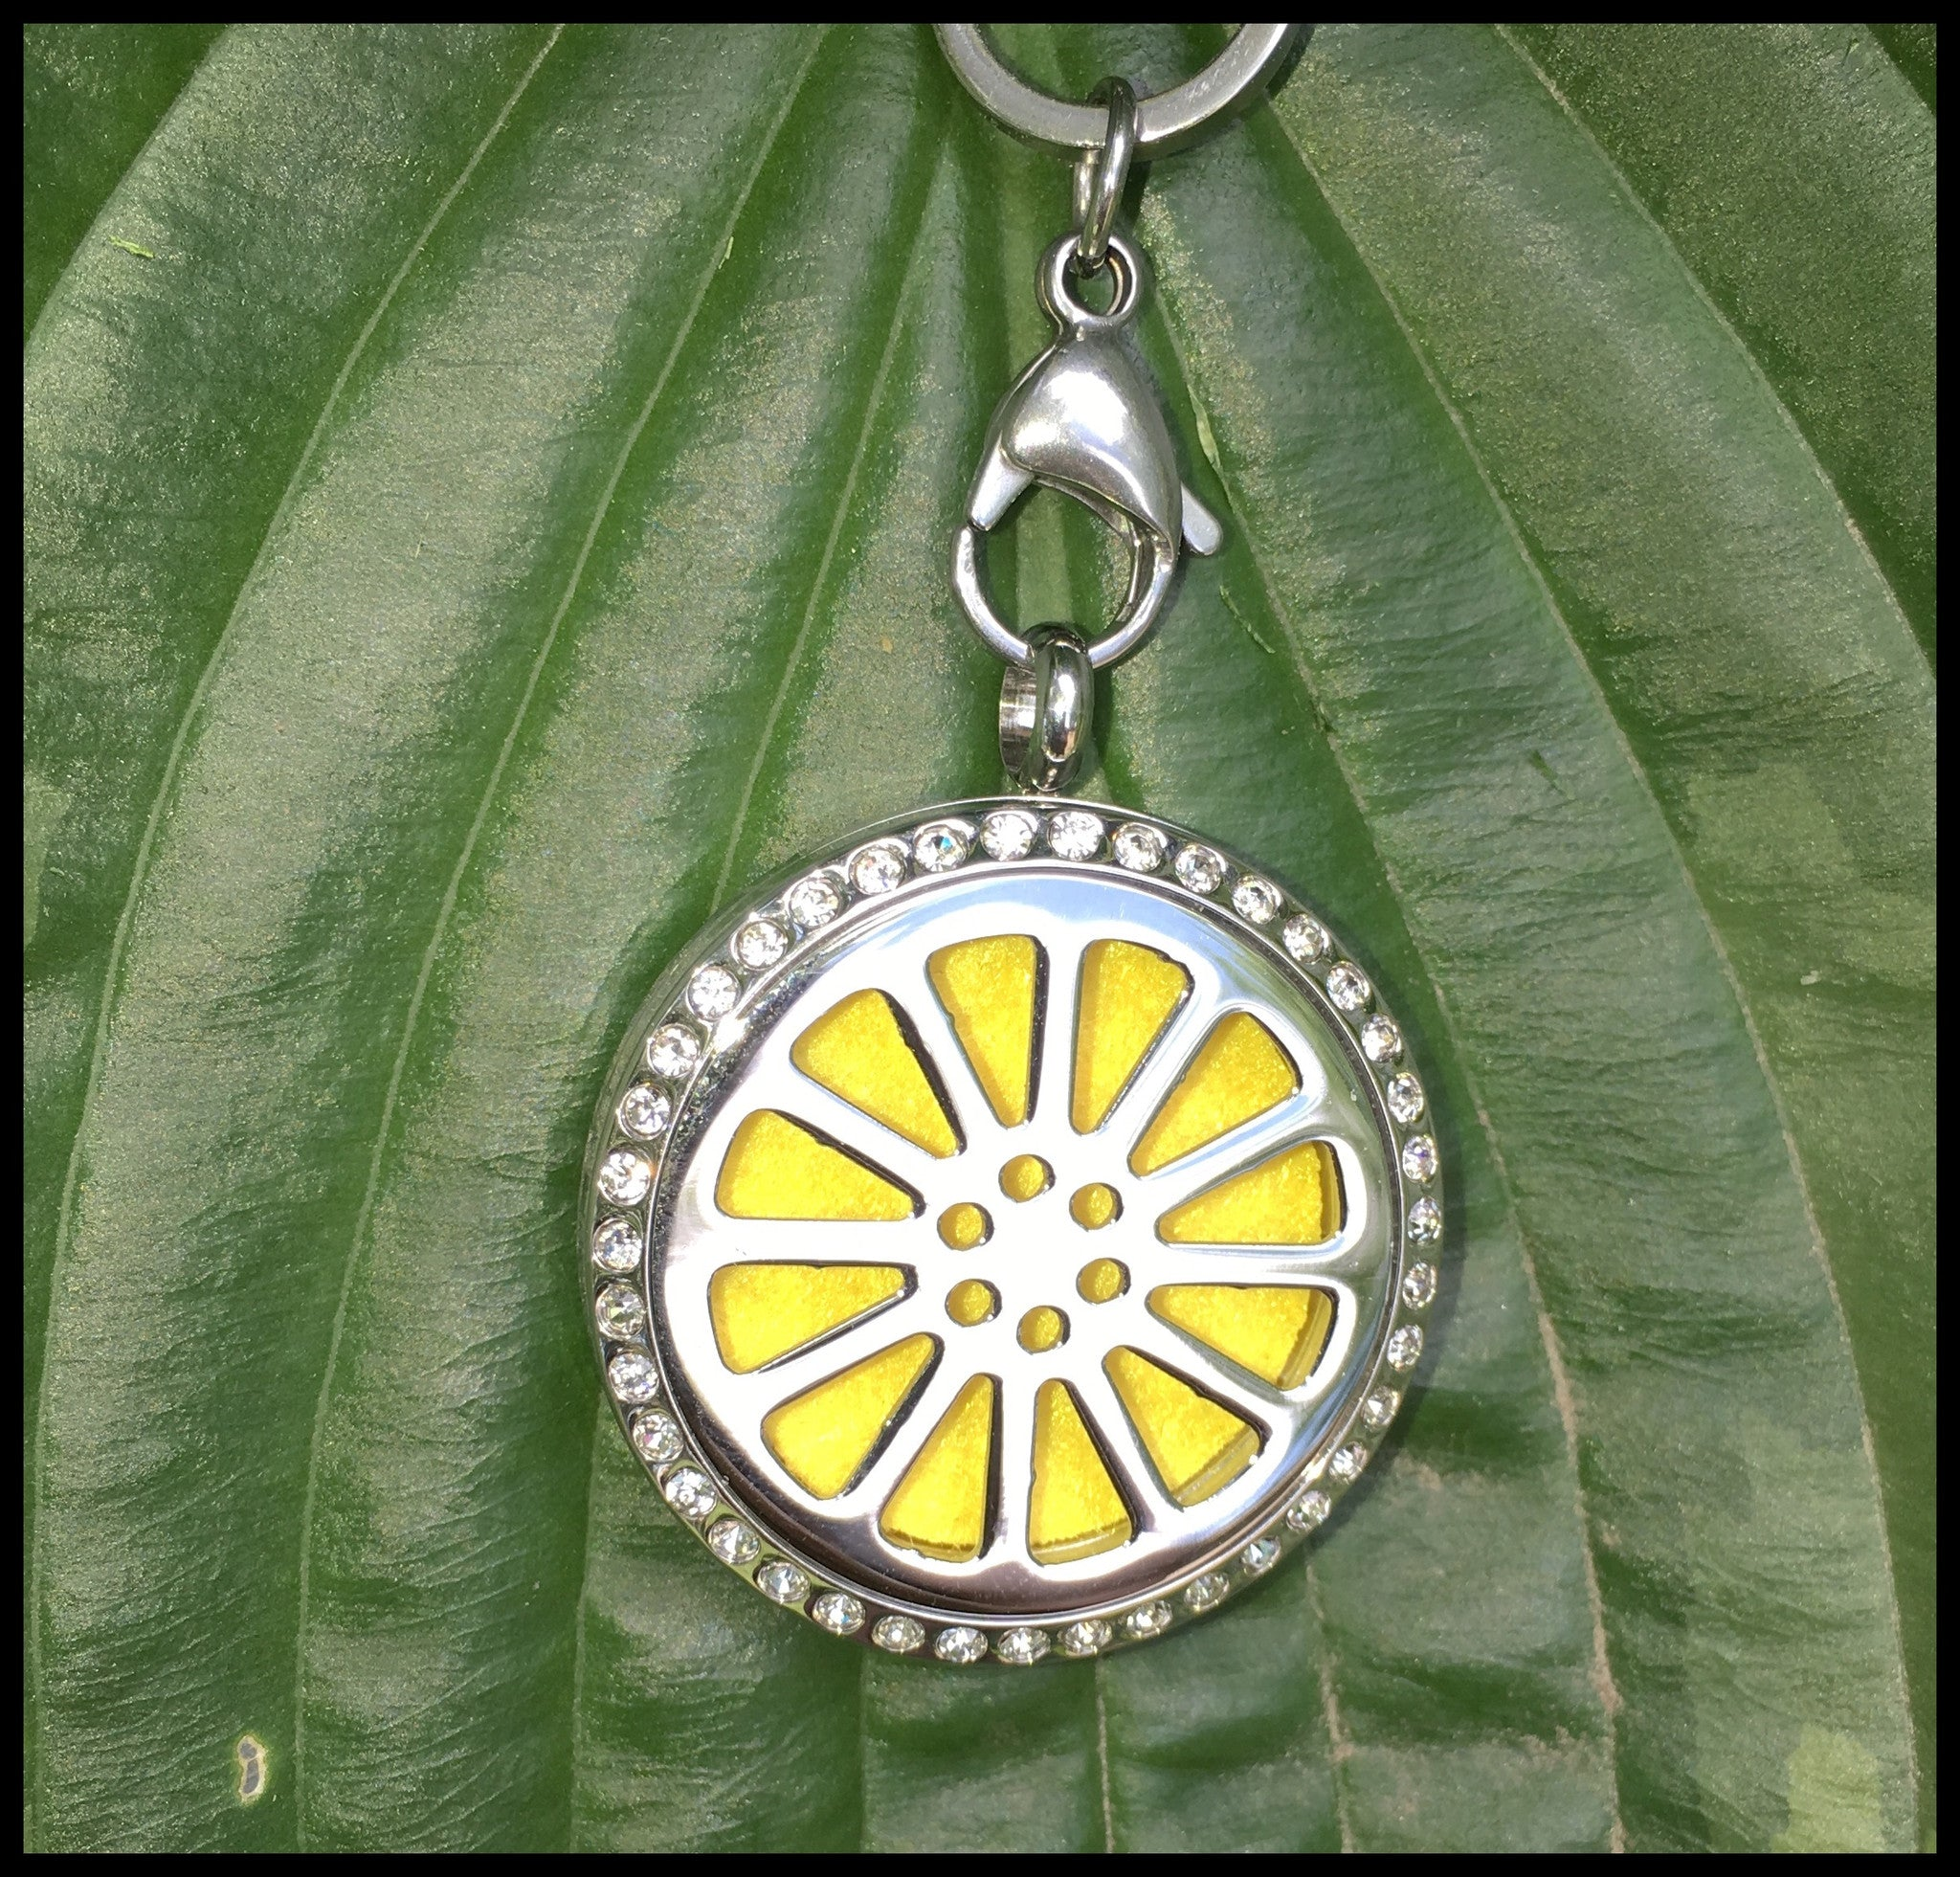 30mm Stainless Steel Round Lemon with Bling